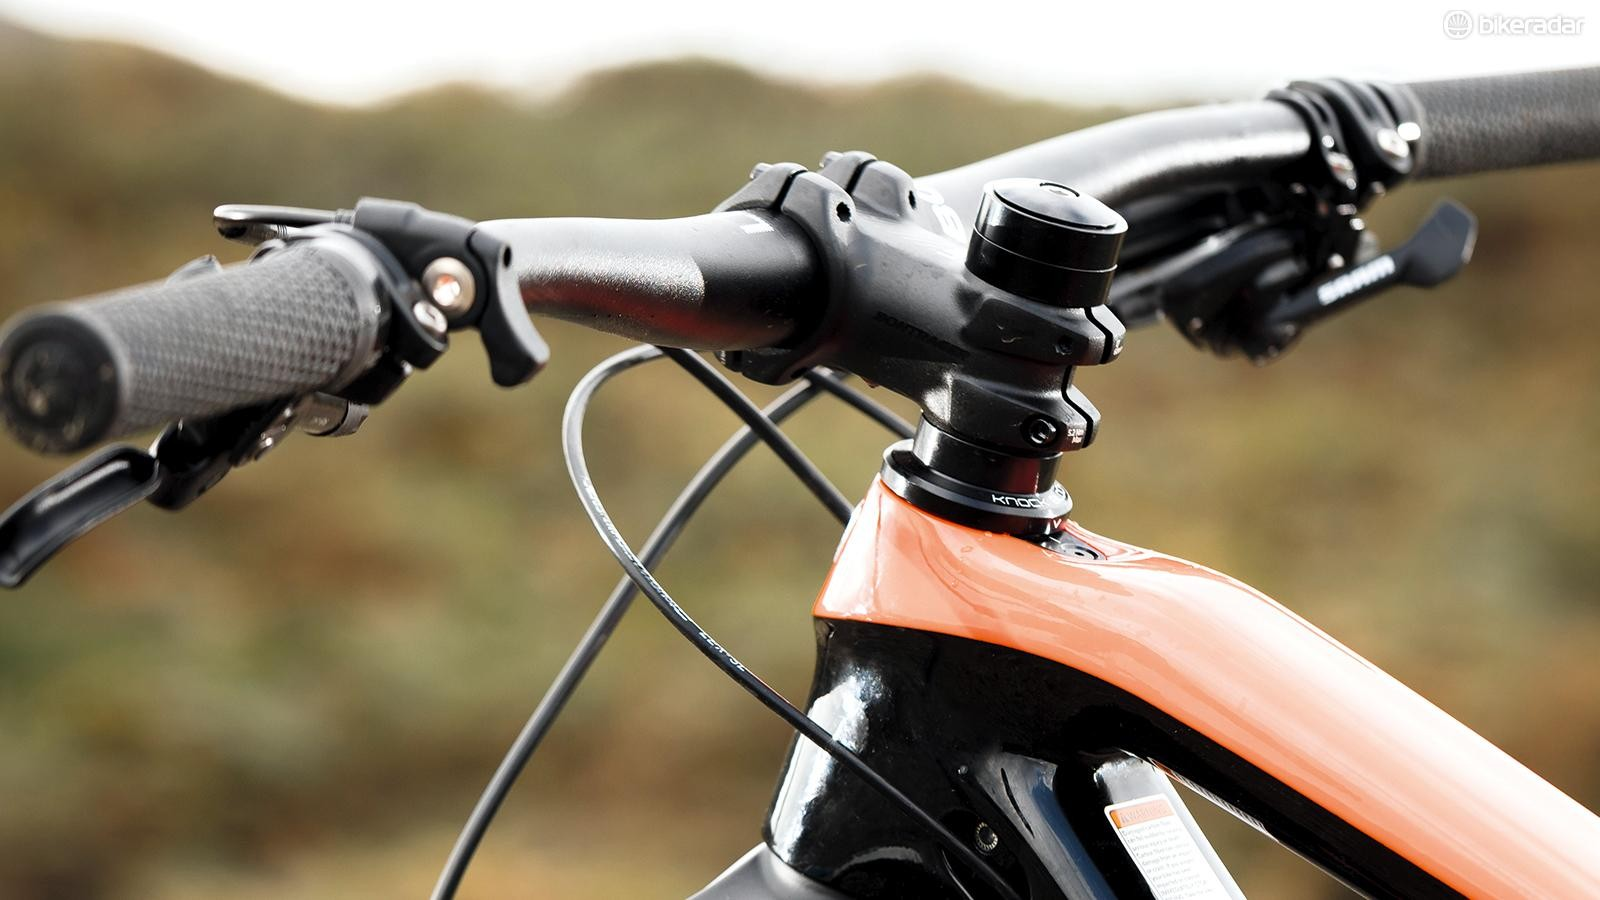 A unique 'Knock Block' headtube and stem system is designed to limit steering lock